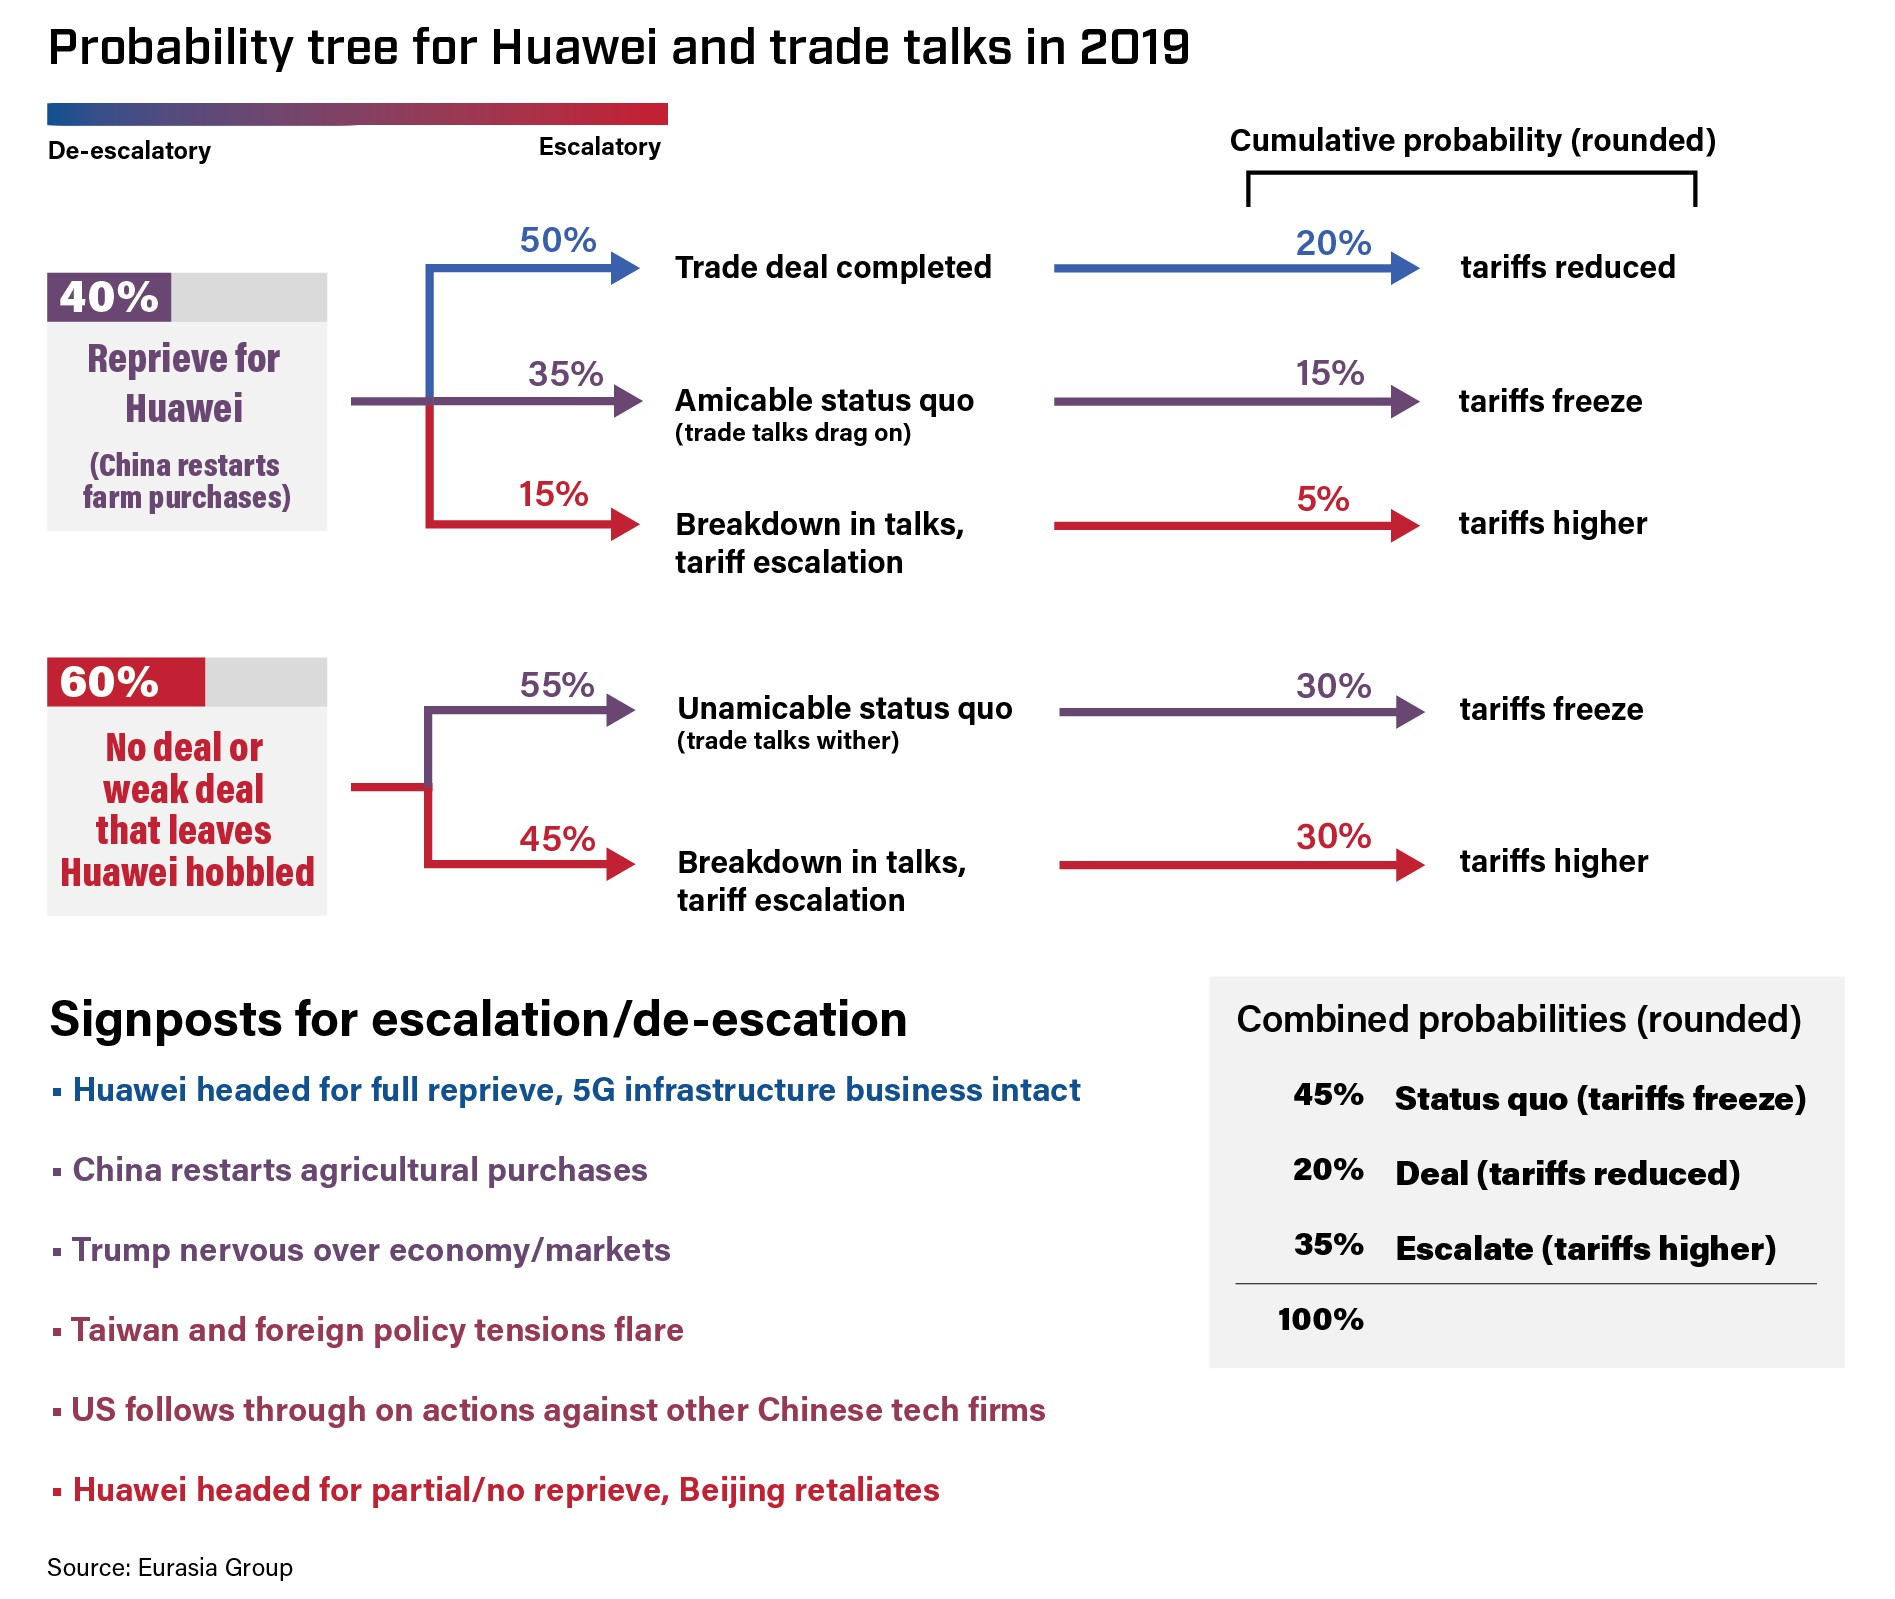 Probability tree for Huawei and trade talks in 2019